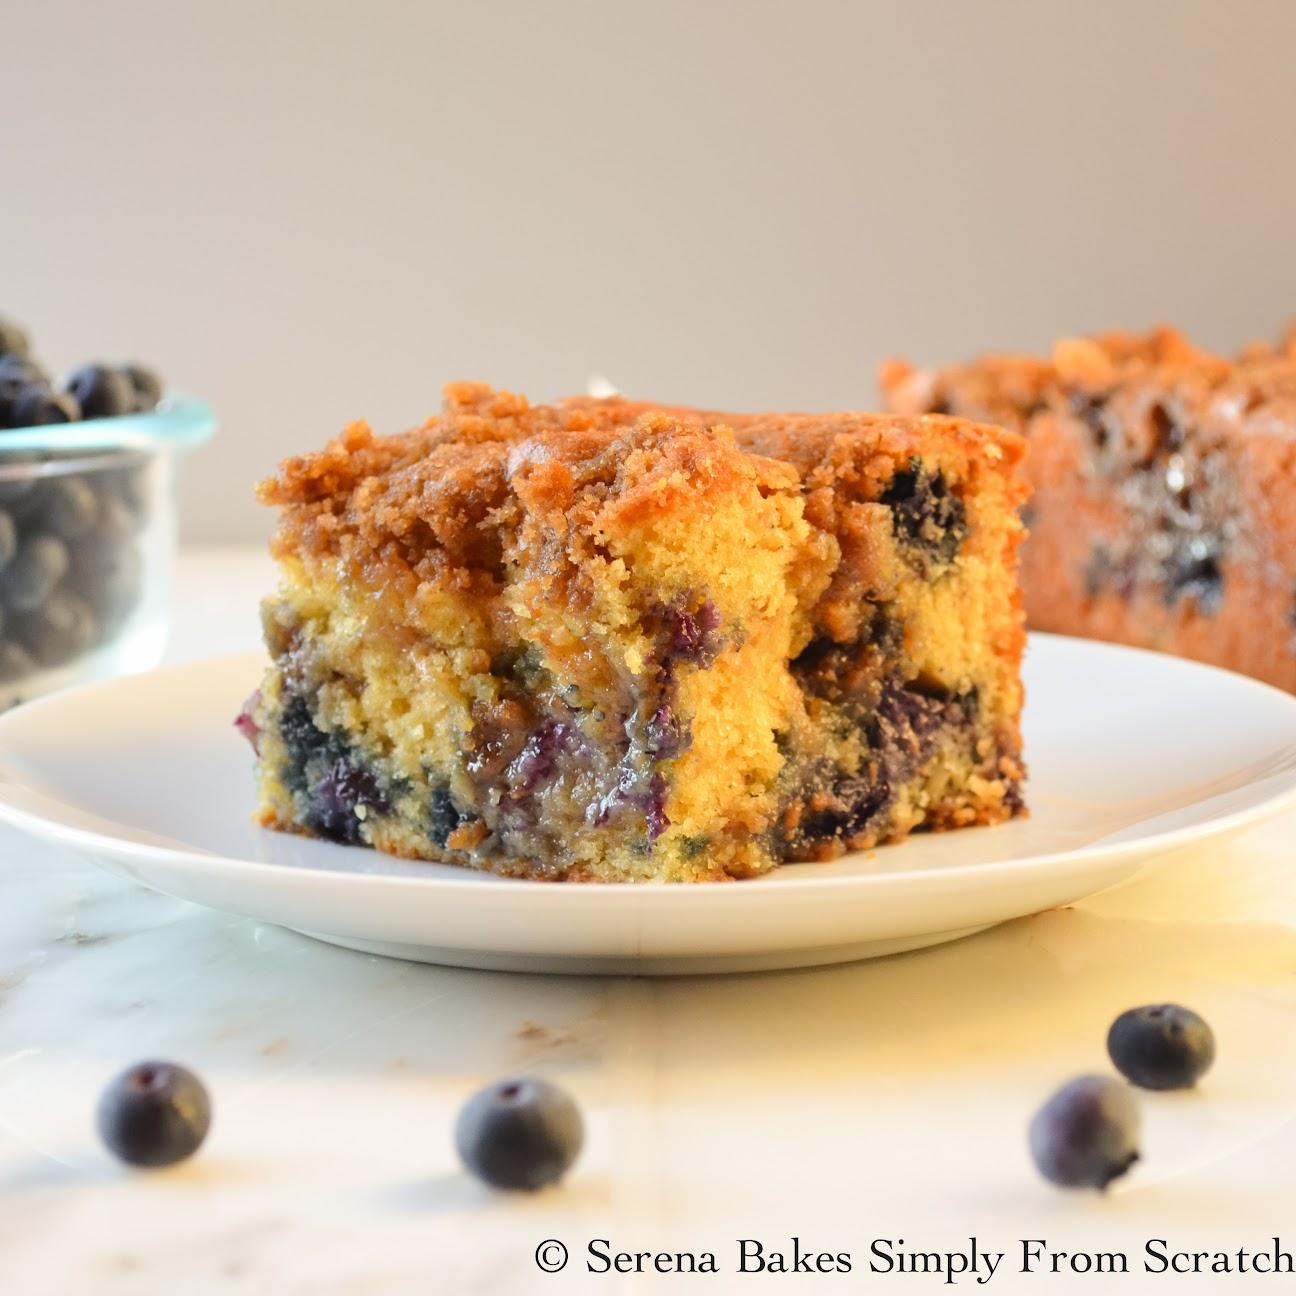 This Blueberry Cinnamon Crumb Coffeecake didn't last long in our house ...